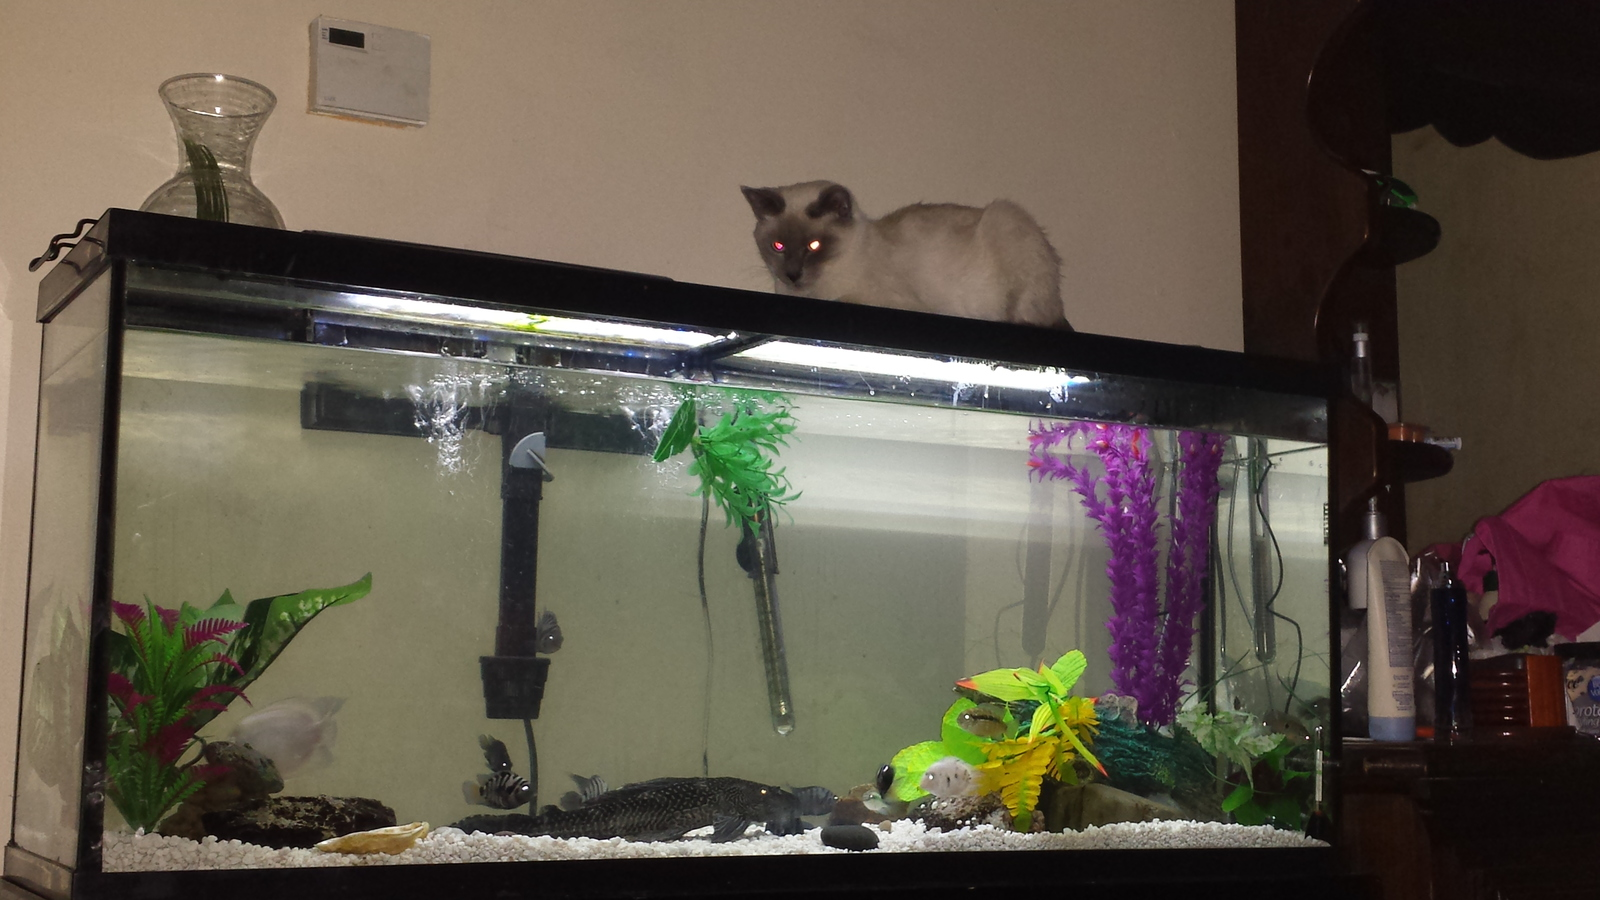 My kitty watching the fish swim | by Monica ackley